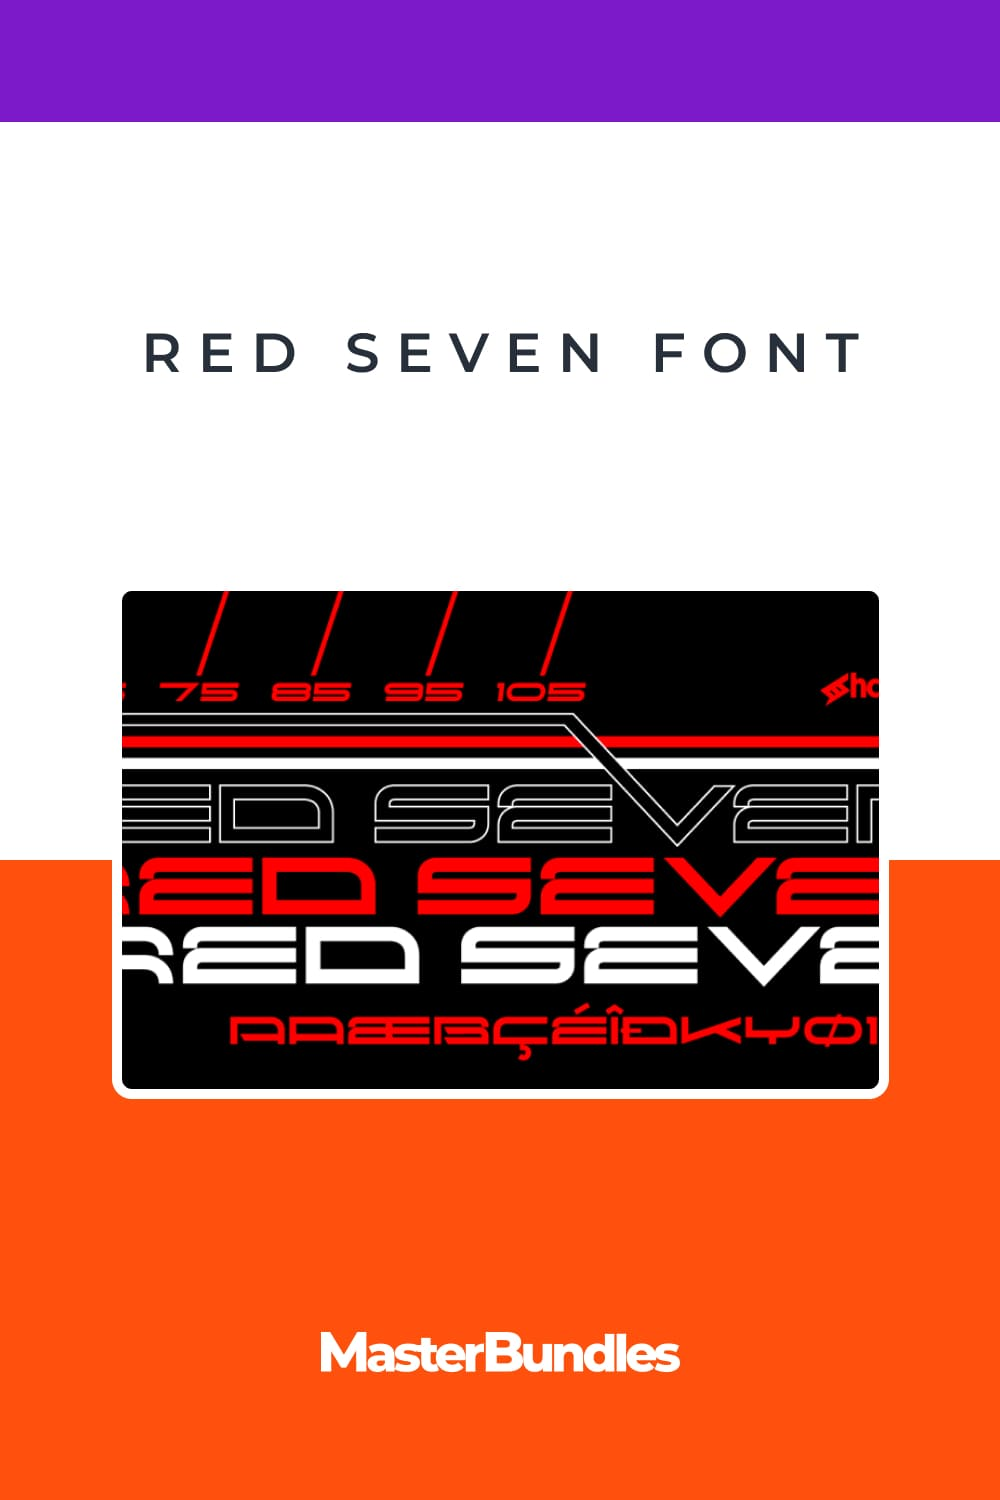 Red Seven is an edgy, futuristic display font that lends itself to lettering, titles, and logos.